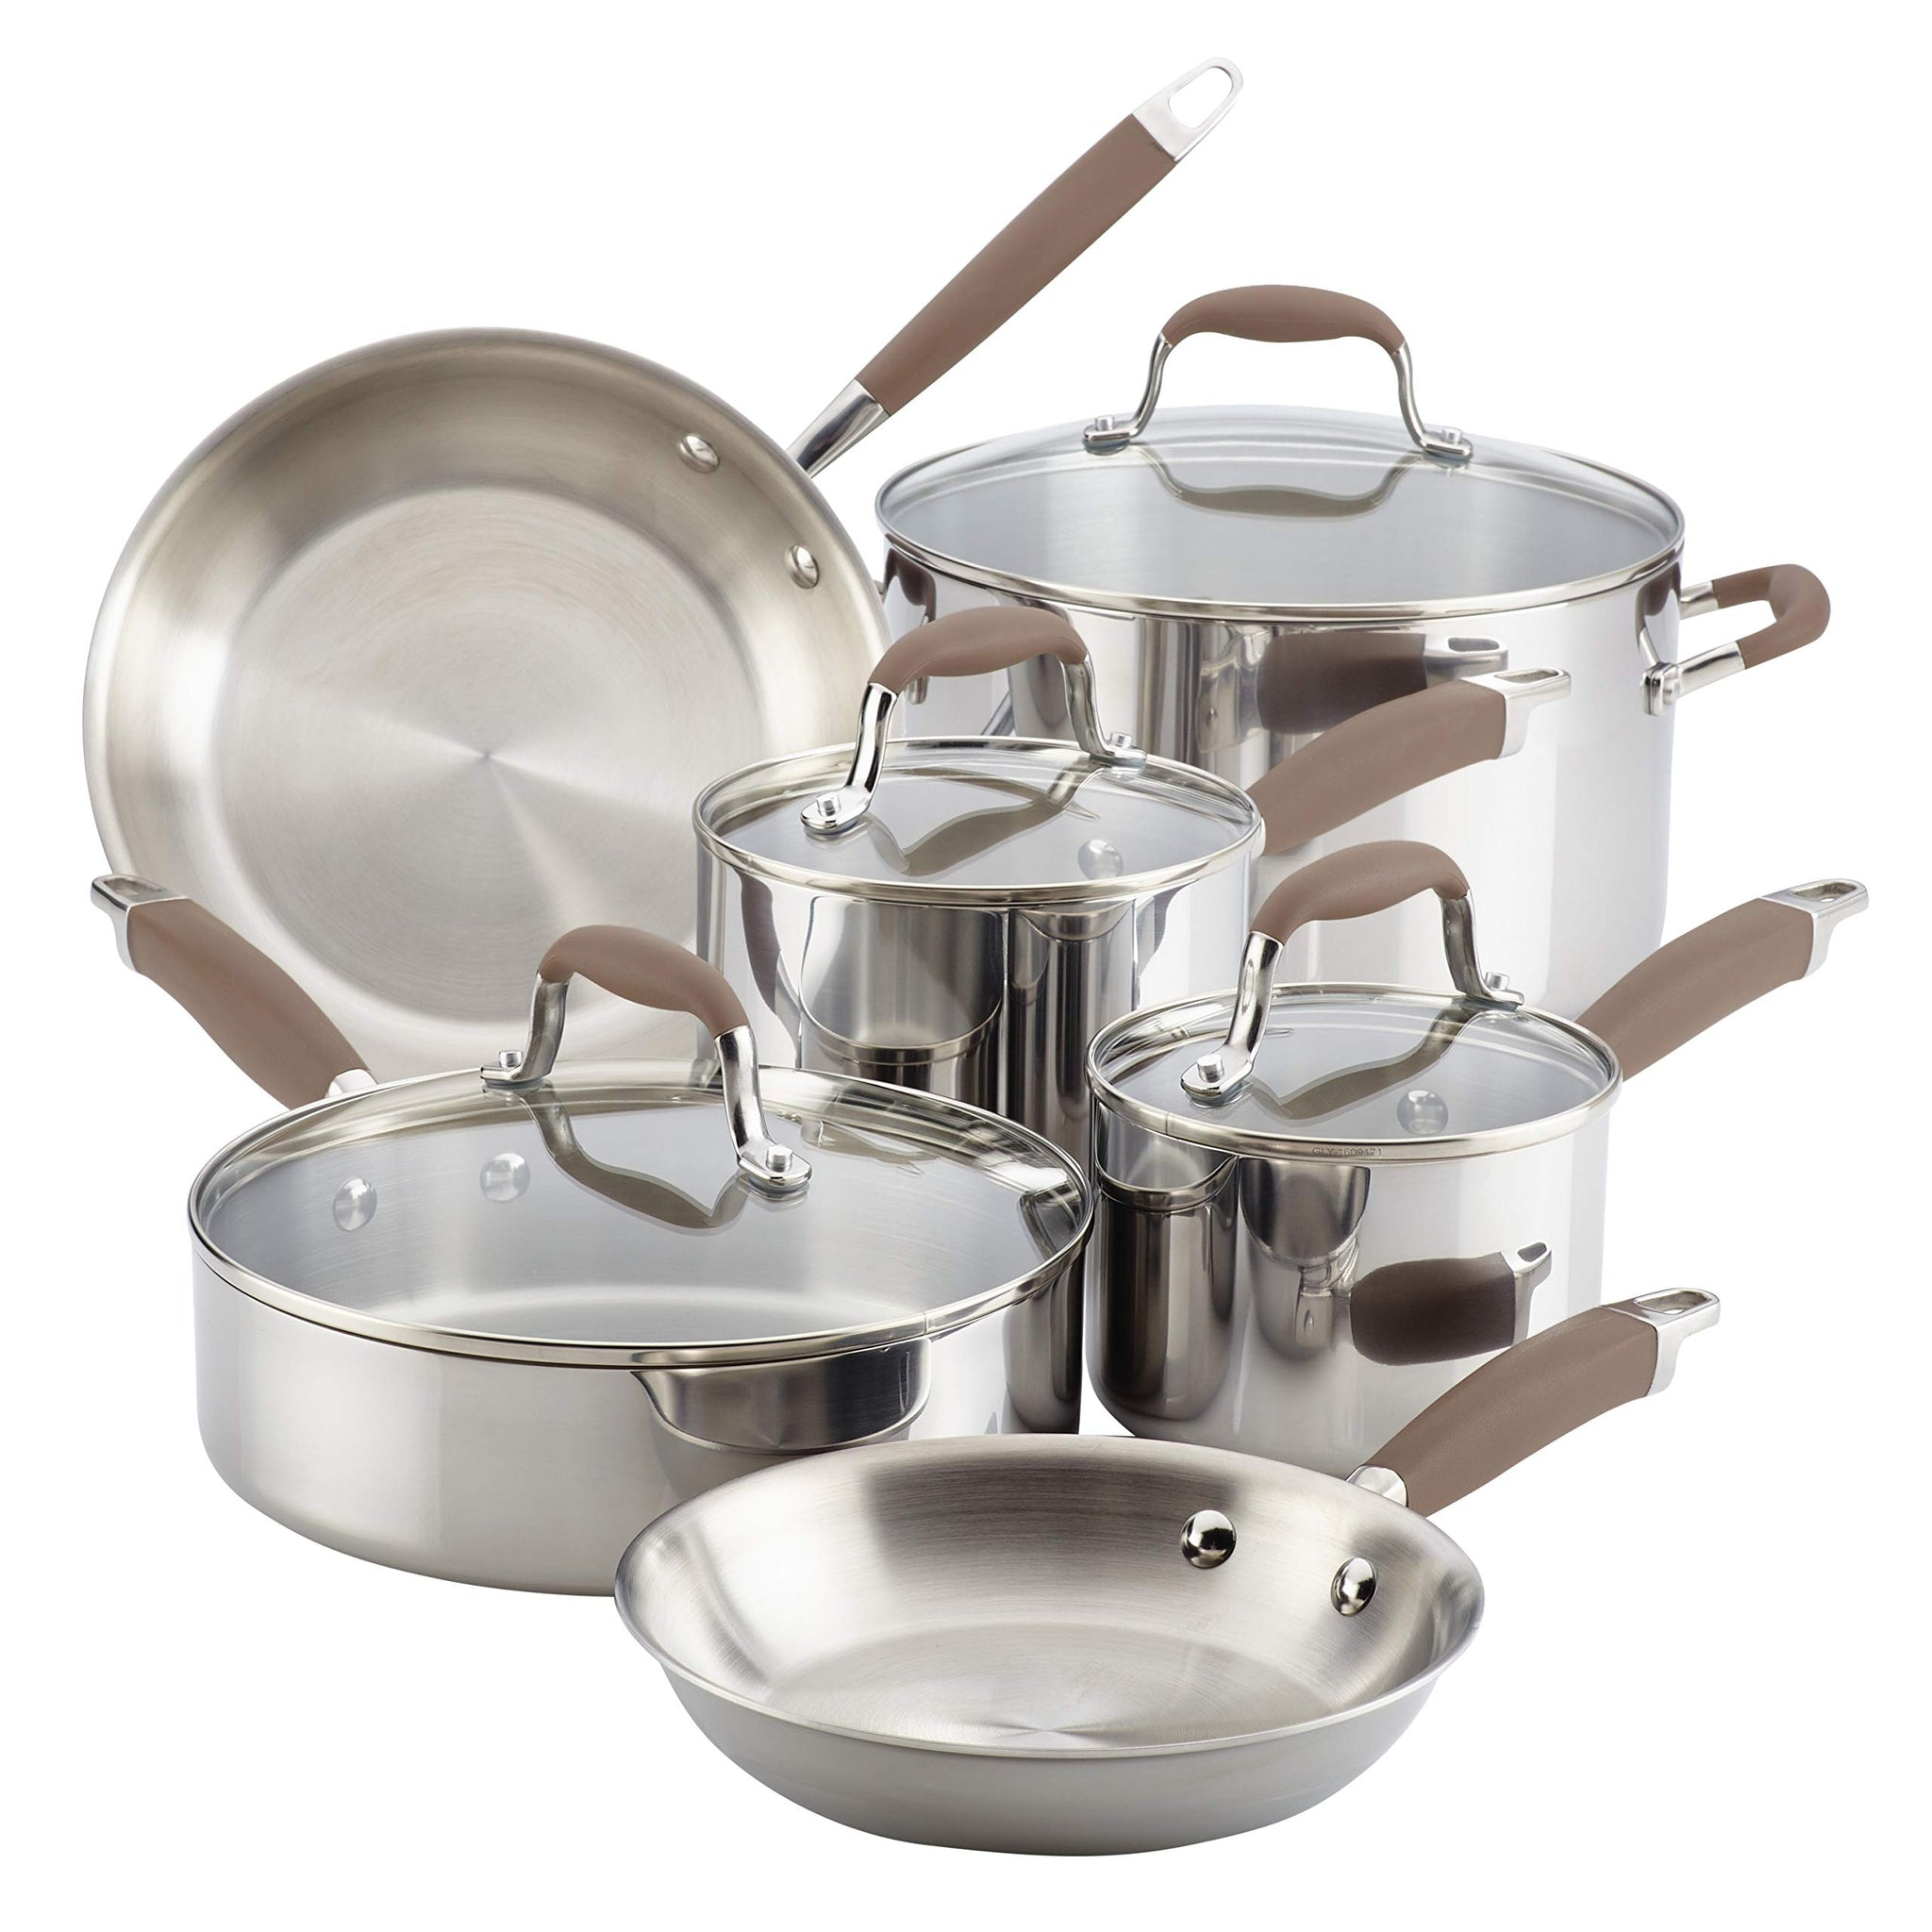 Anolon 31521 10-Piece Stainless Steel Cookware Set, Bronze Handles